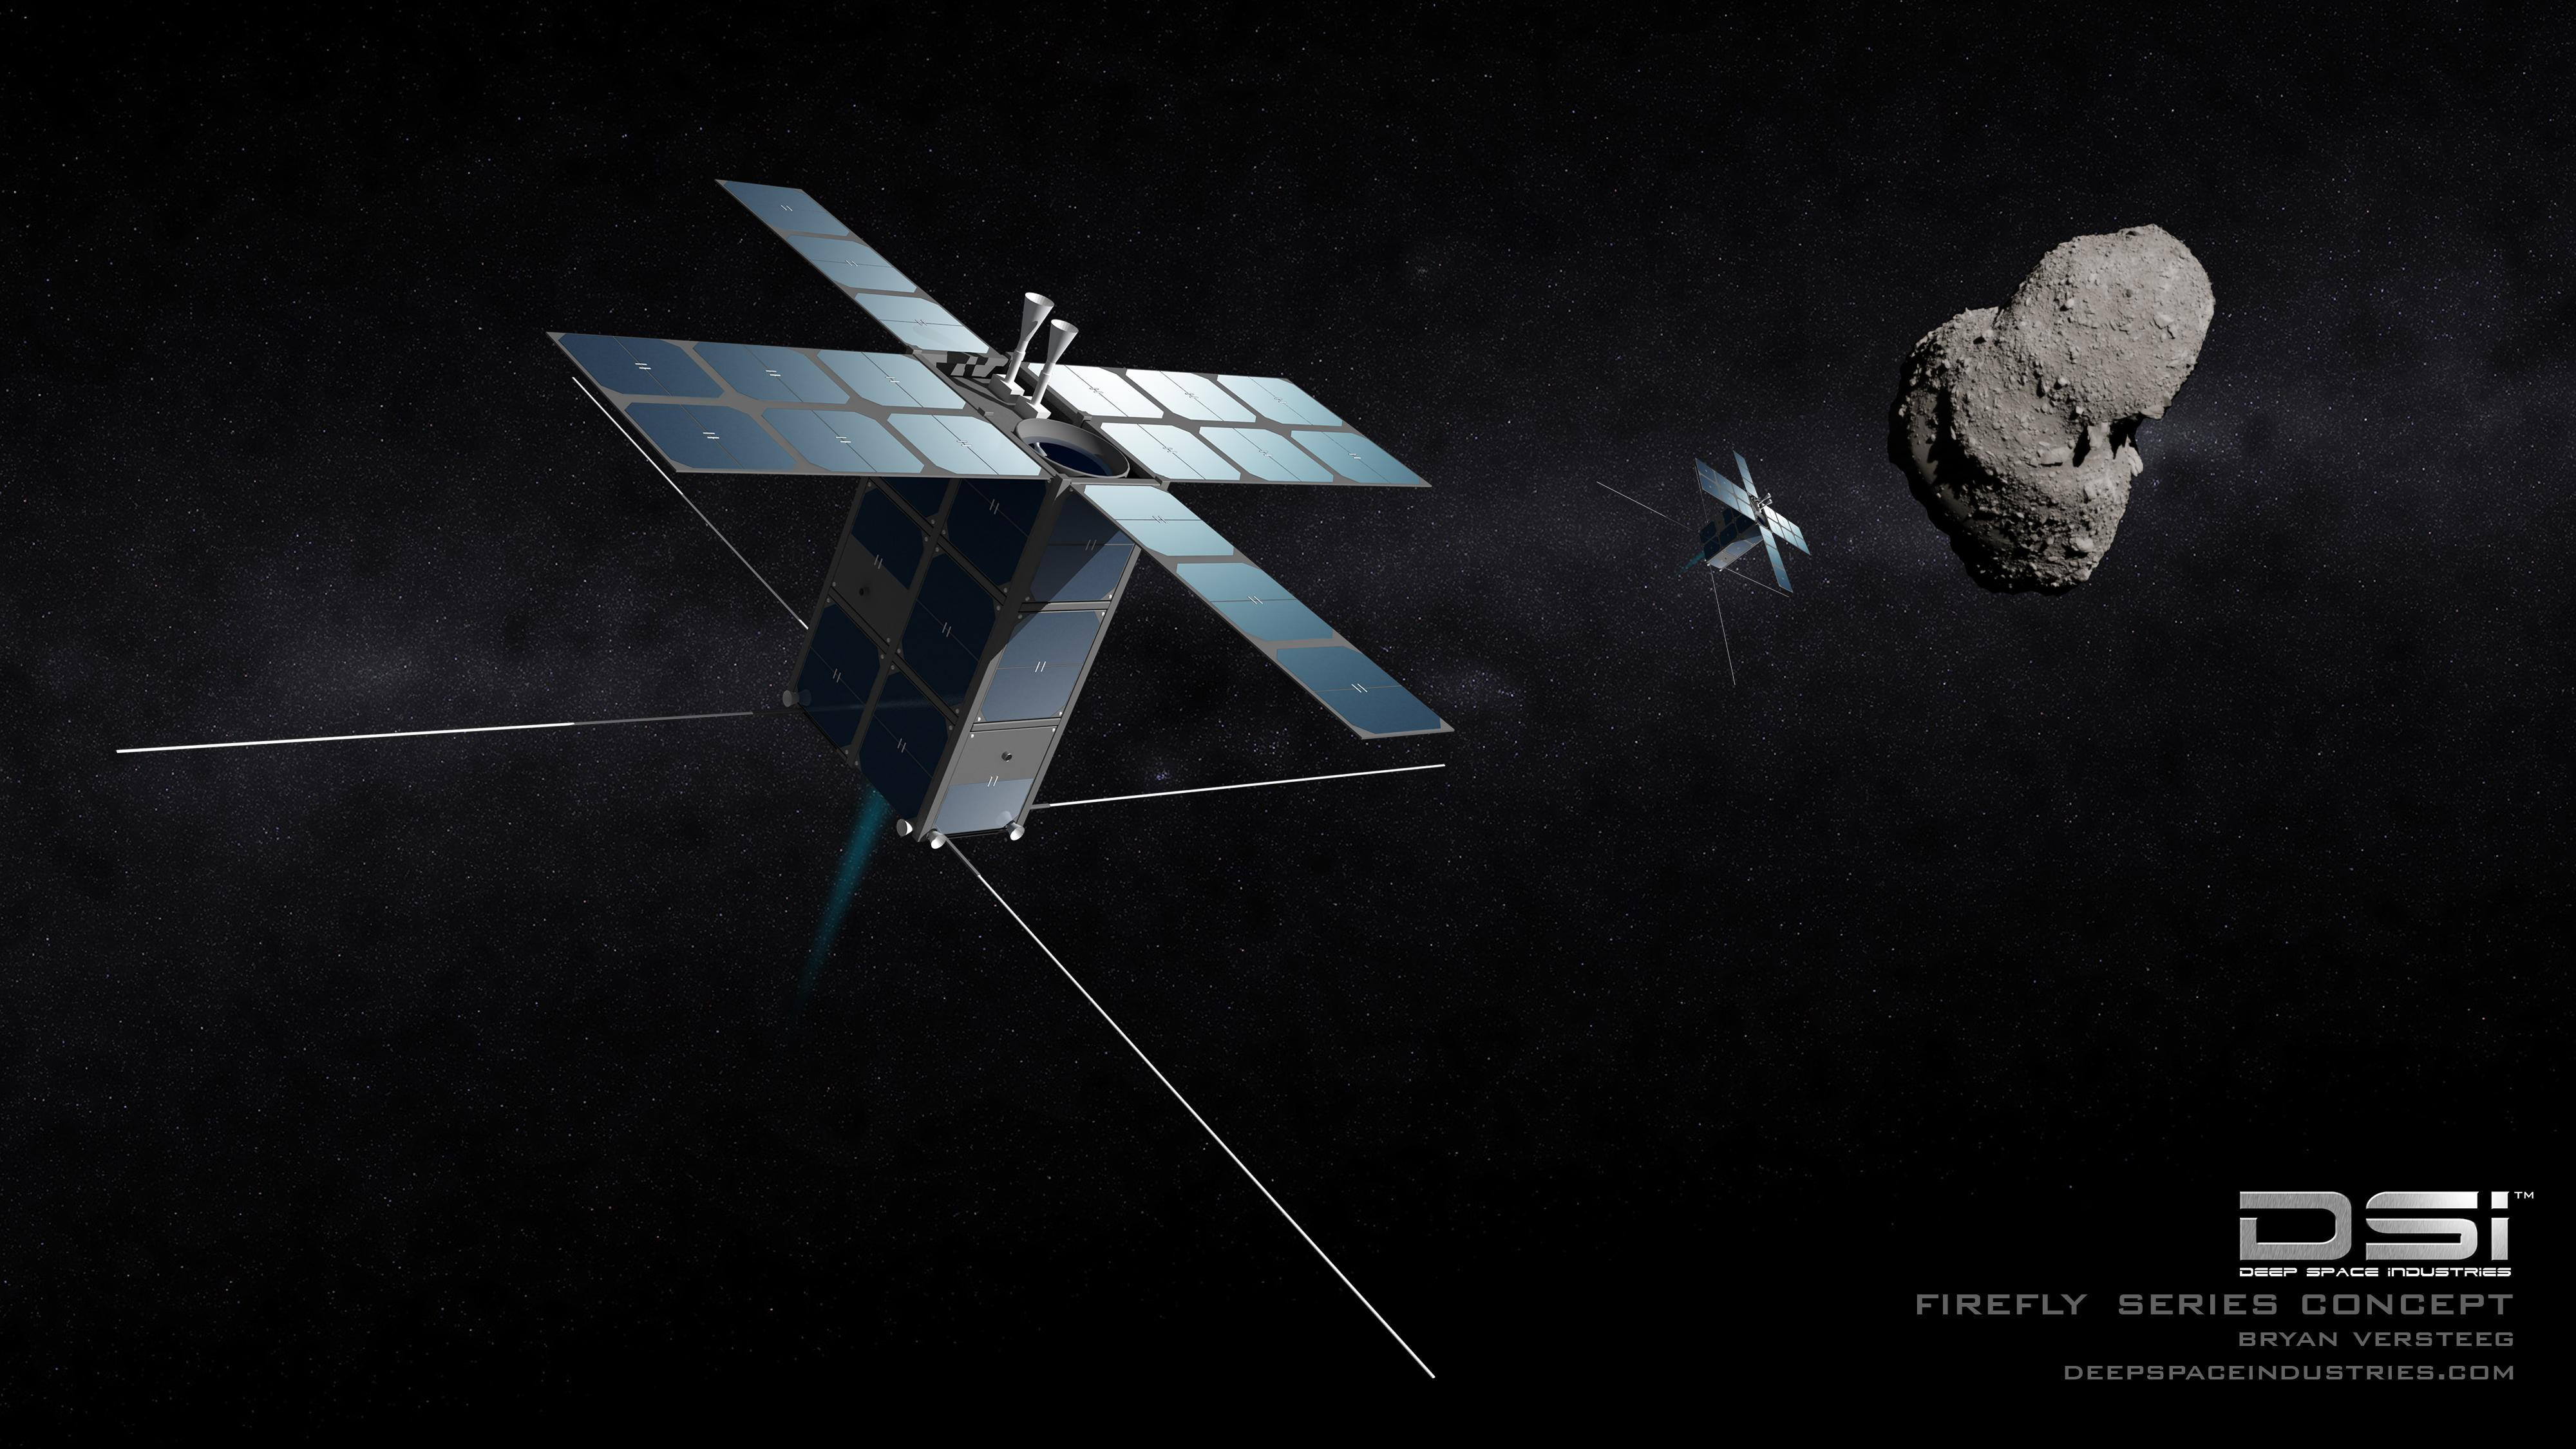 """A drawing shows what Deep Space Industries' initial """"FireFly"""" craft might look like as they explore a small asteroid up-close."""